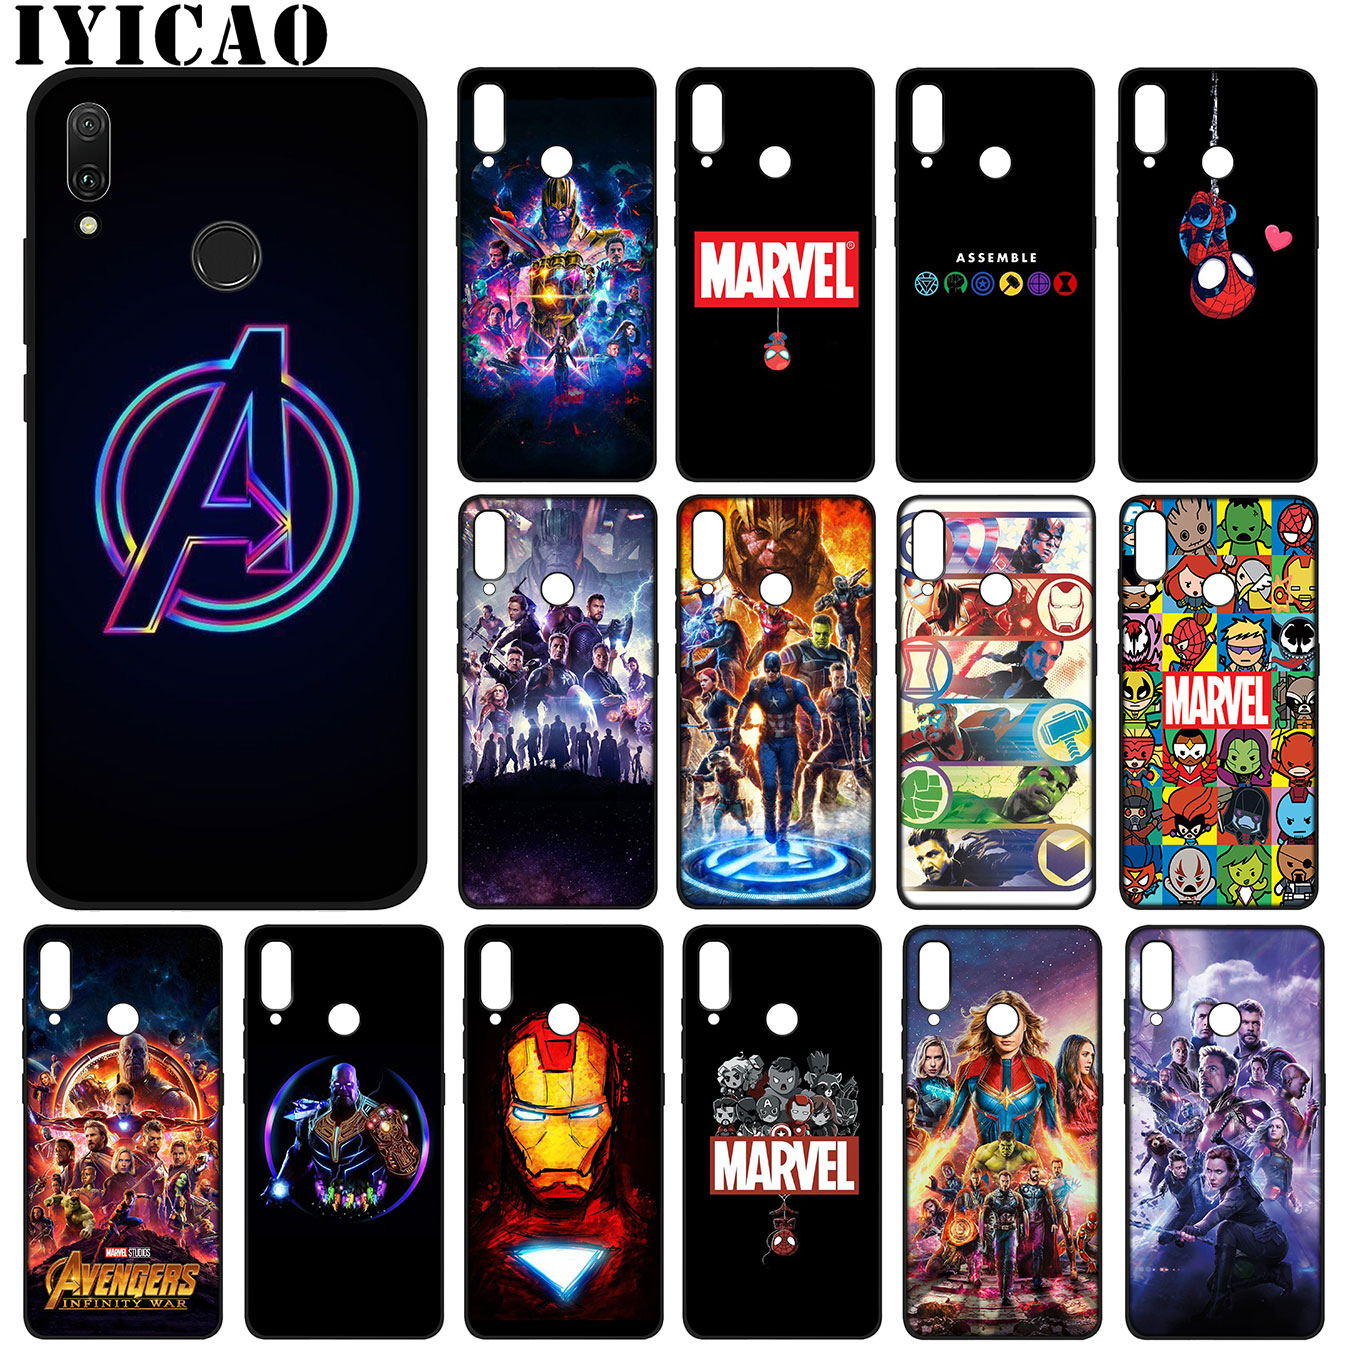 Avengers Endgame Marvel Iron Man Thanos Soft Silicone Case for Huawei Y9 Prime 2019 <font><b>Cover</b></font> <font><b>Honor</b></font> 20 <font><b>8X</b></font> 8 9 9X 10 Lite 7C 7A Pro image